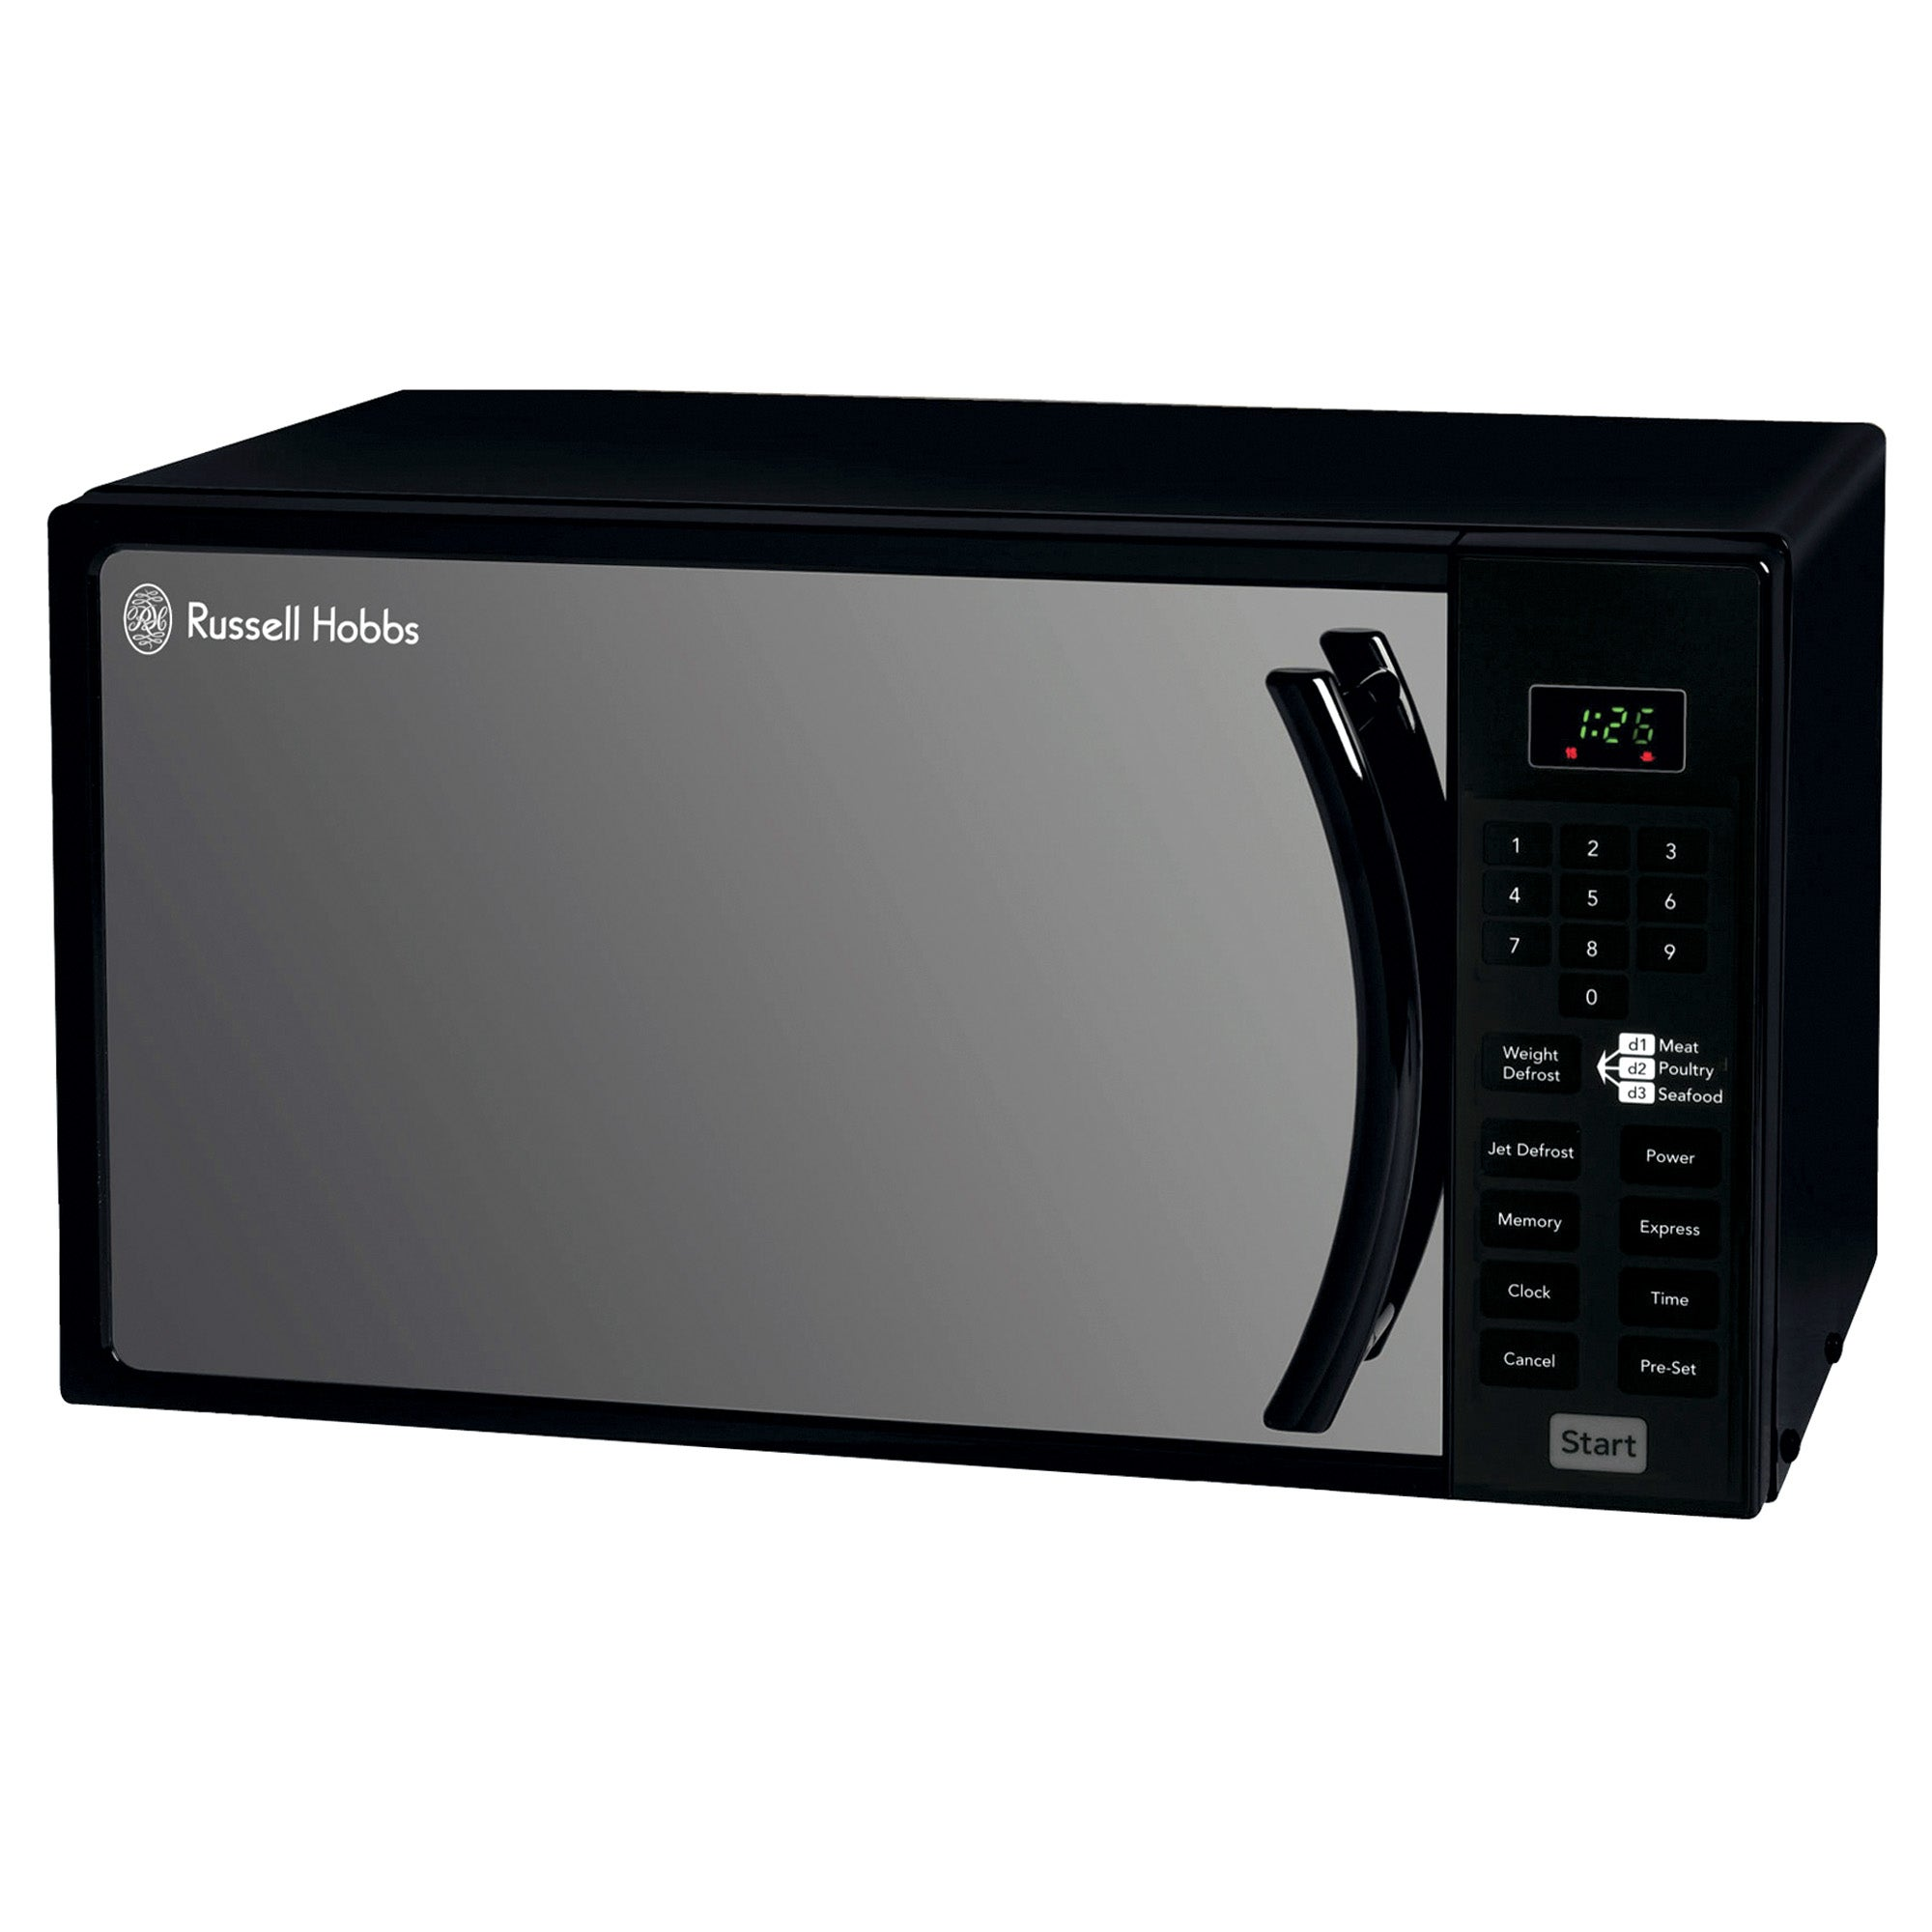 Russell Hobbs Black Touch Control Microwave